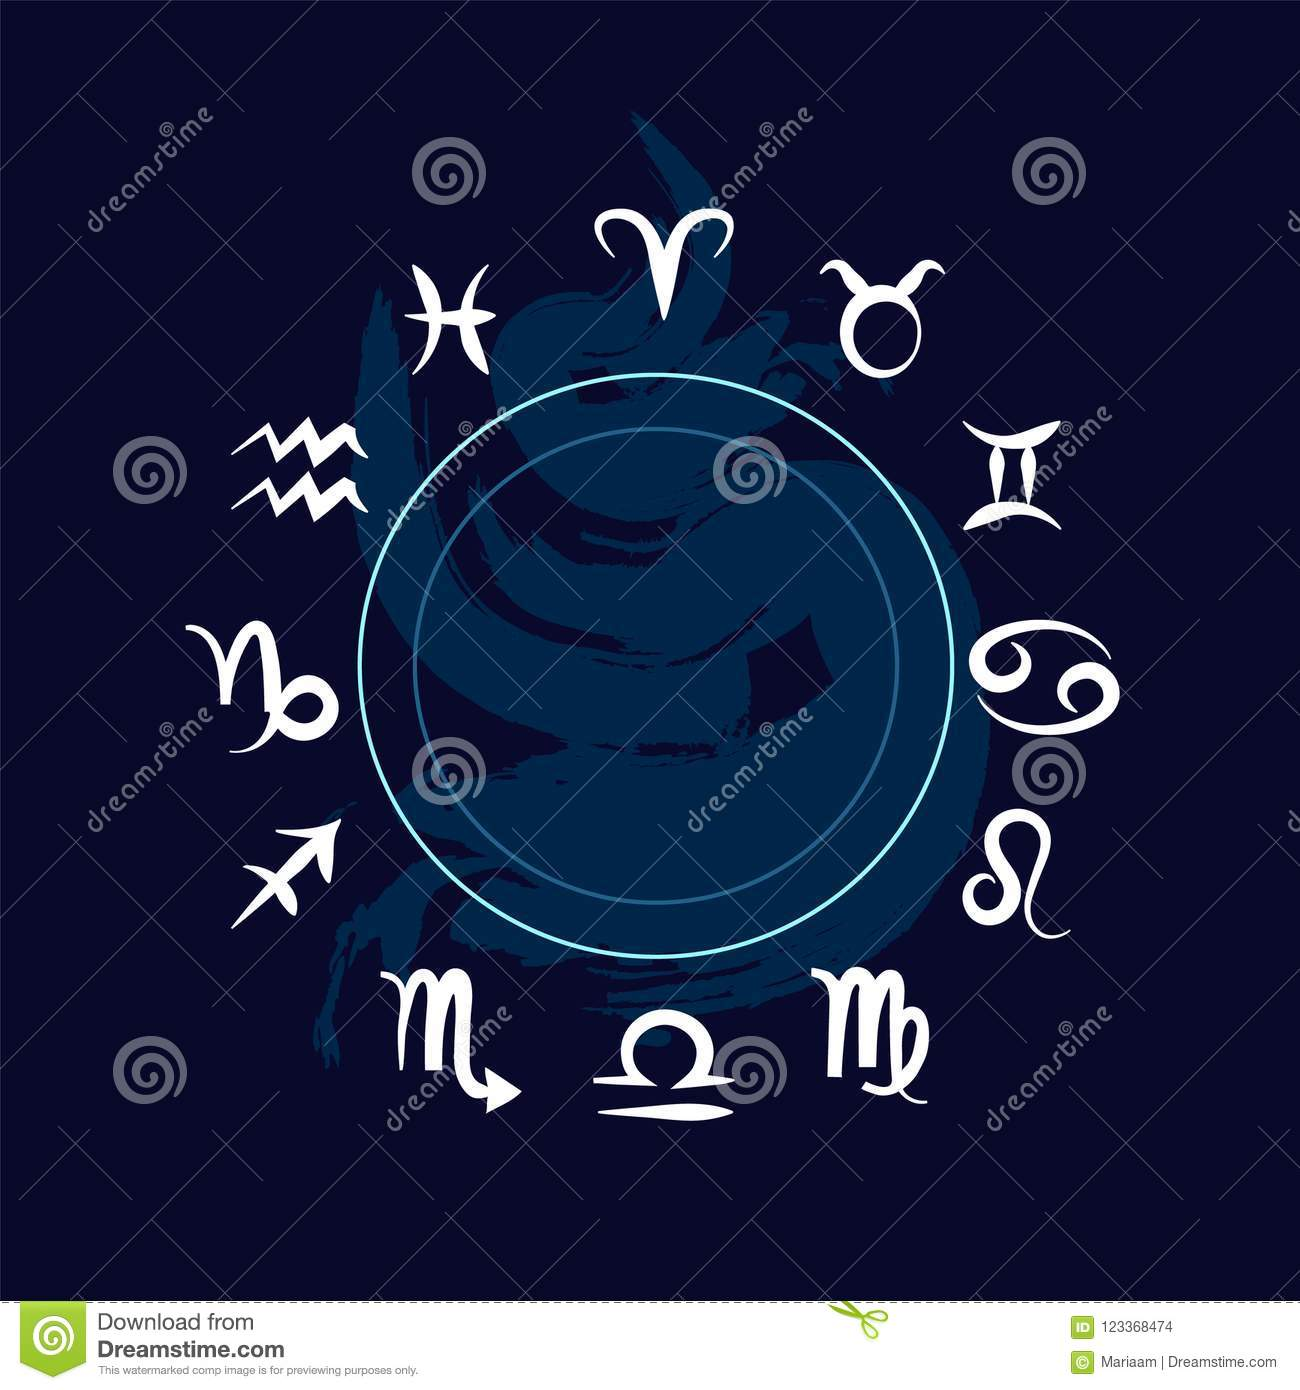 The signs of the zodiac. Horoscope symbols over blue background. Clean vector design.